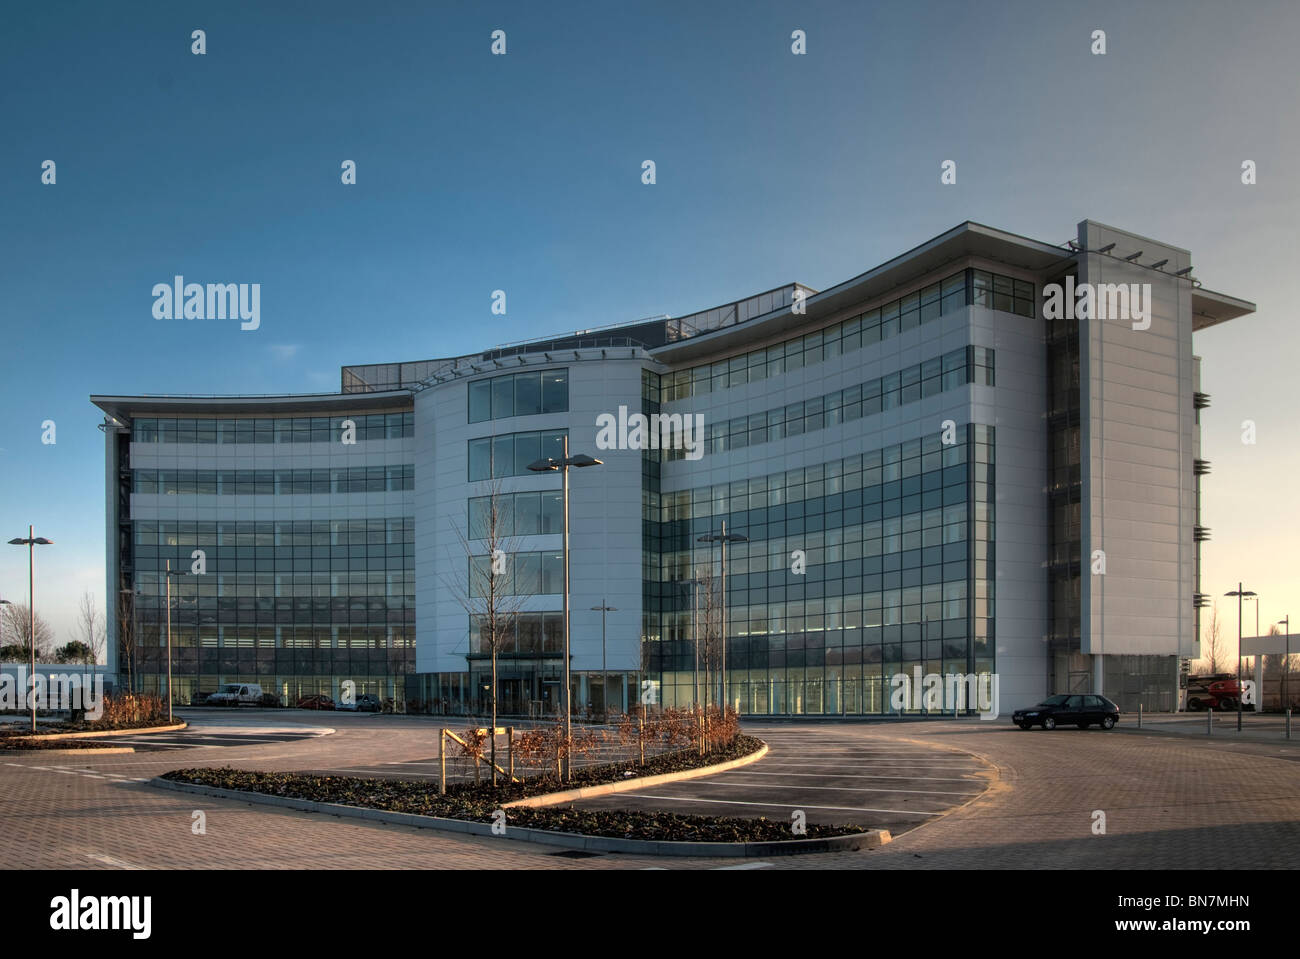 exteriors of Ray Marine office building at Cosham, Portsmouth - Stock Image